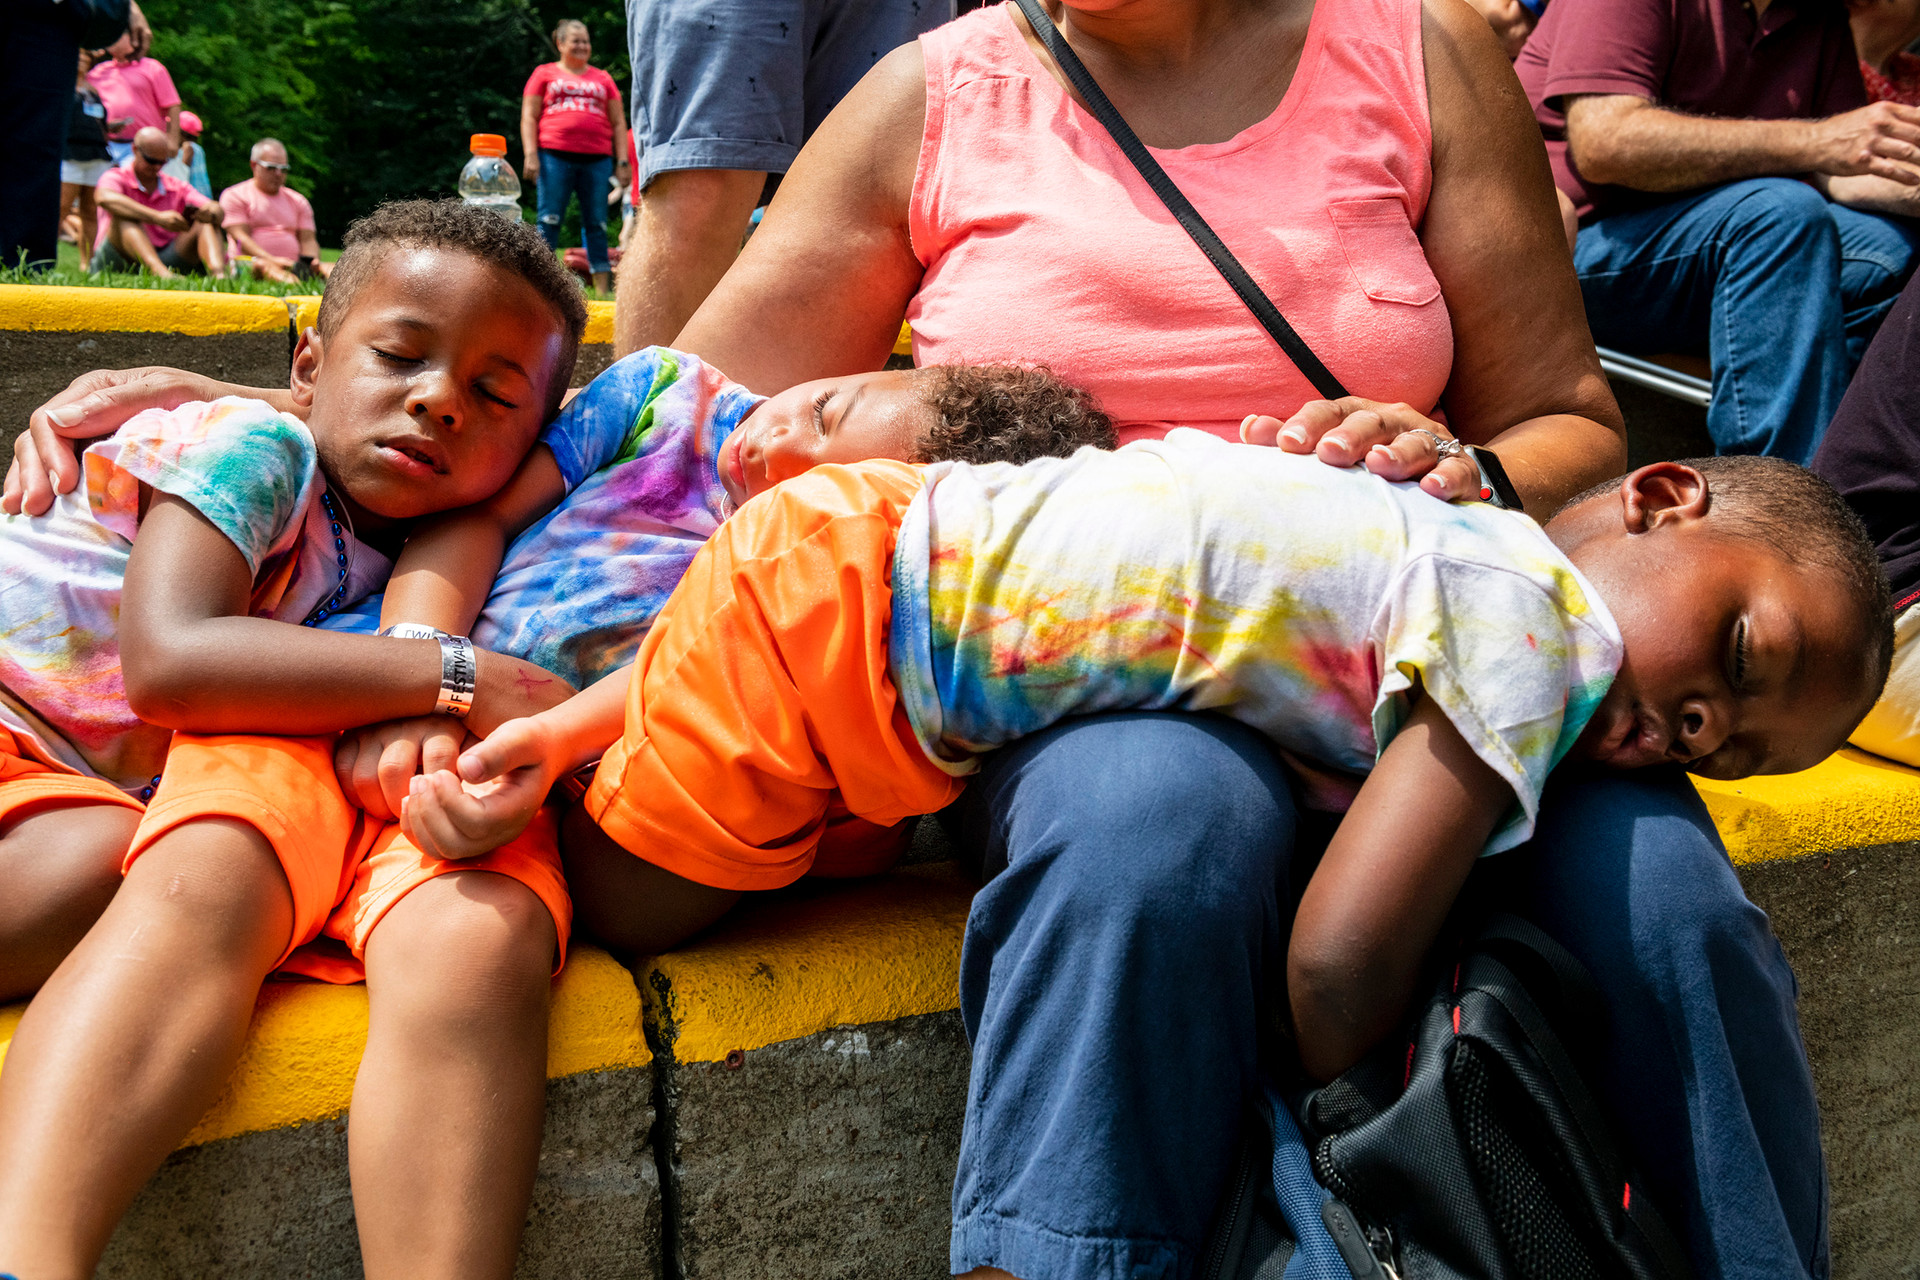 """Daniel Clark, 3, left, his twin brother Gabriel Clark, 3, center, and Samuel Clark, 2, right, all of the North Side, sleep on their grandmother Robin Hubbard, of Sewickley,   while waiting to watch their twin siblings participate in the costume contest at the 44th annual Twins Days Festival, Saturday, August 3, 2019, in Twinsburg, Ohio. The annual international event is recorded as the """"Largest Annual Gathering of Twins in the World"""" by the Guinness Book of World Records."""